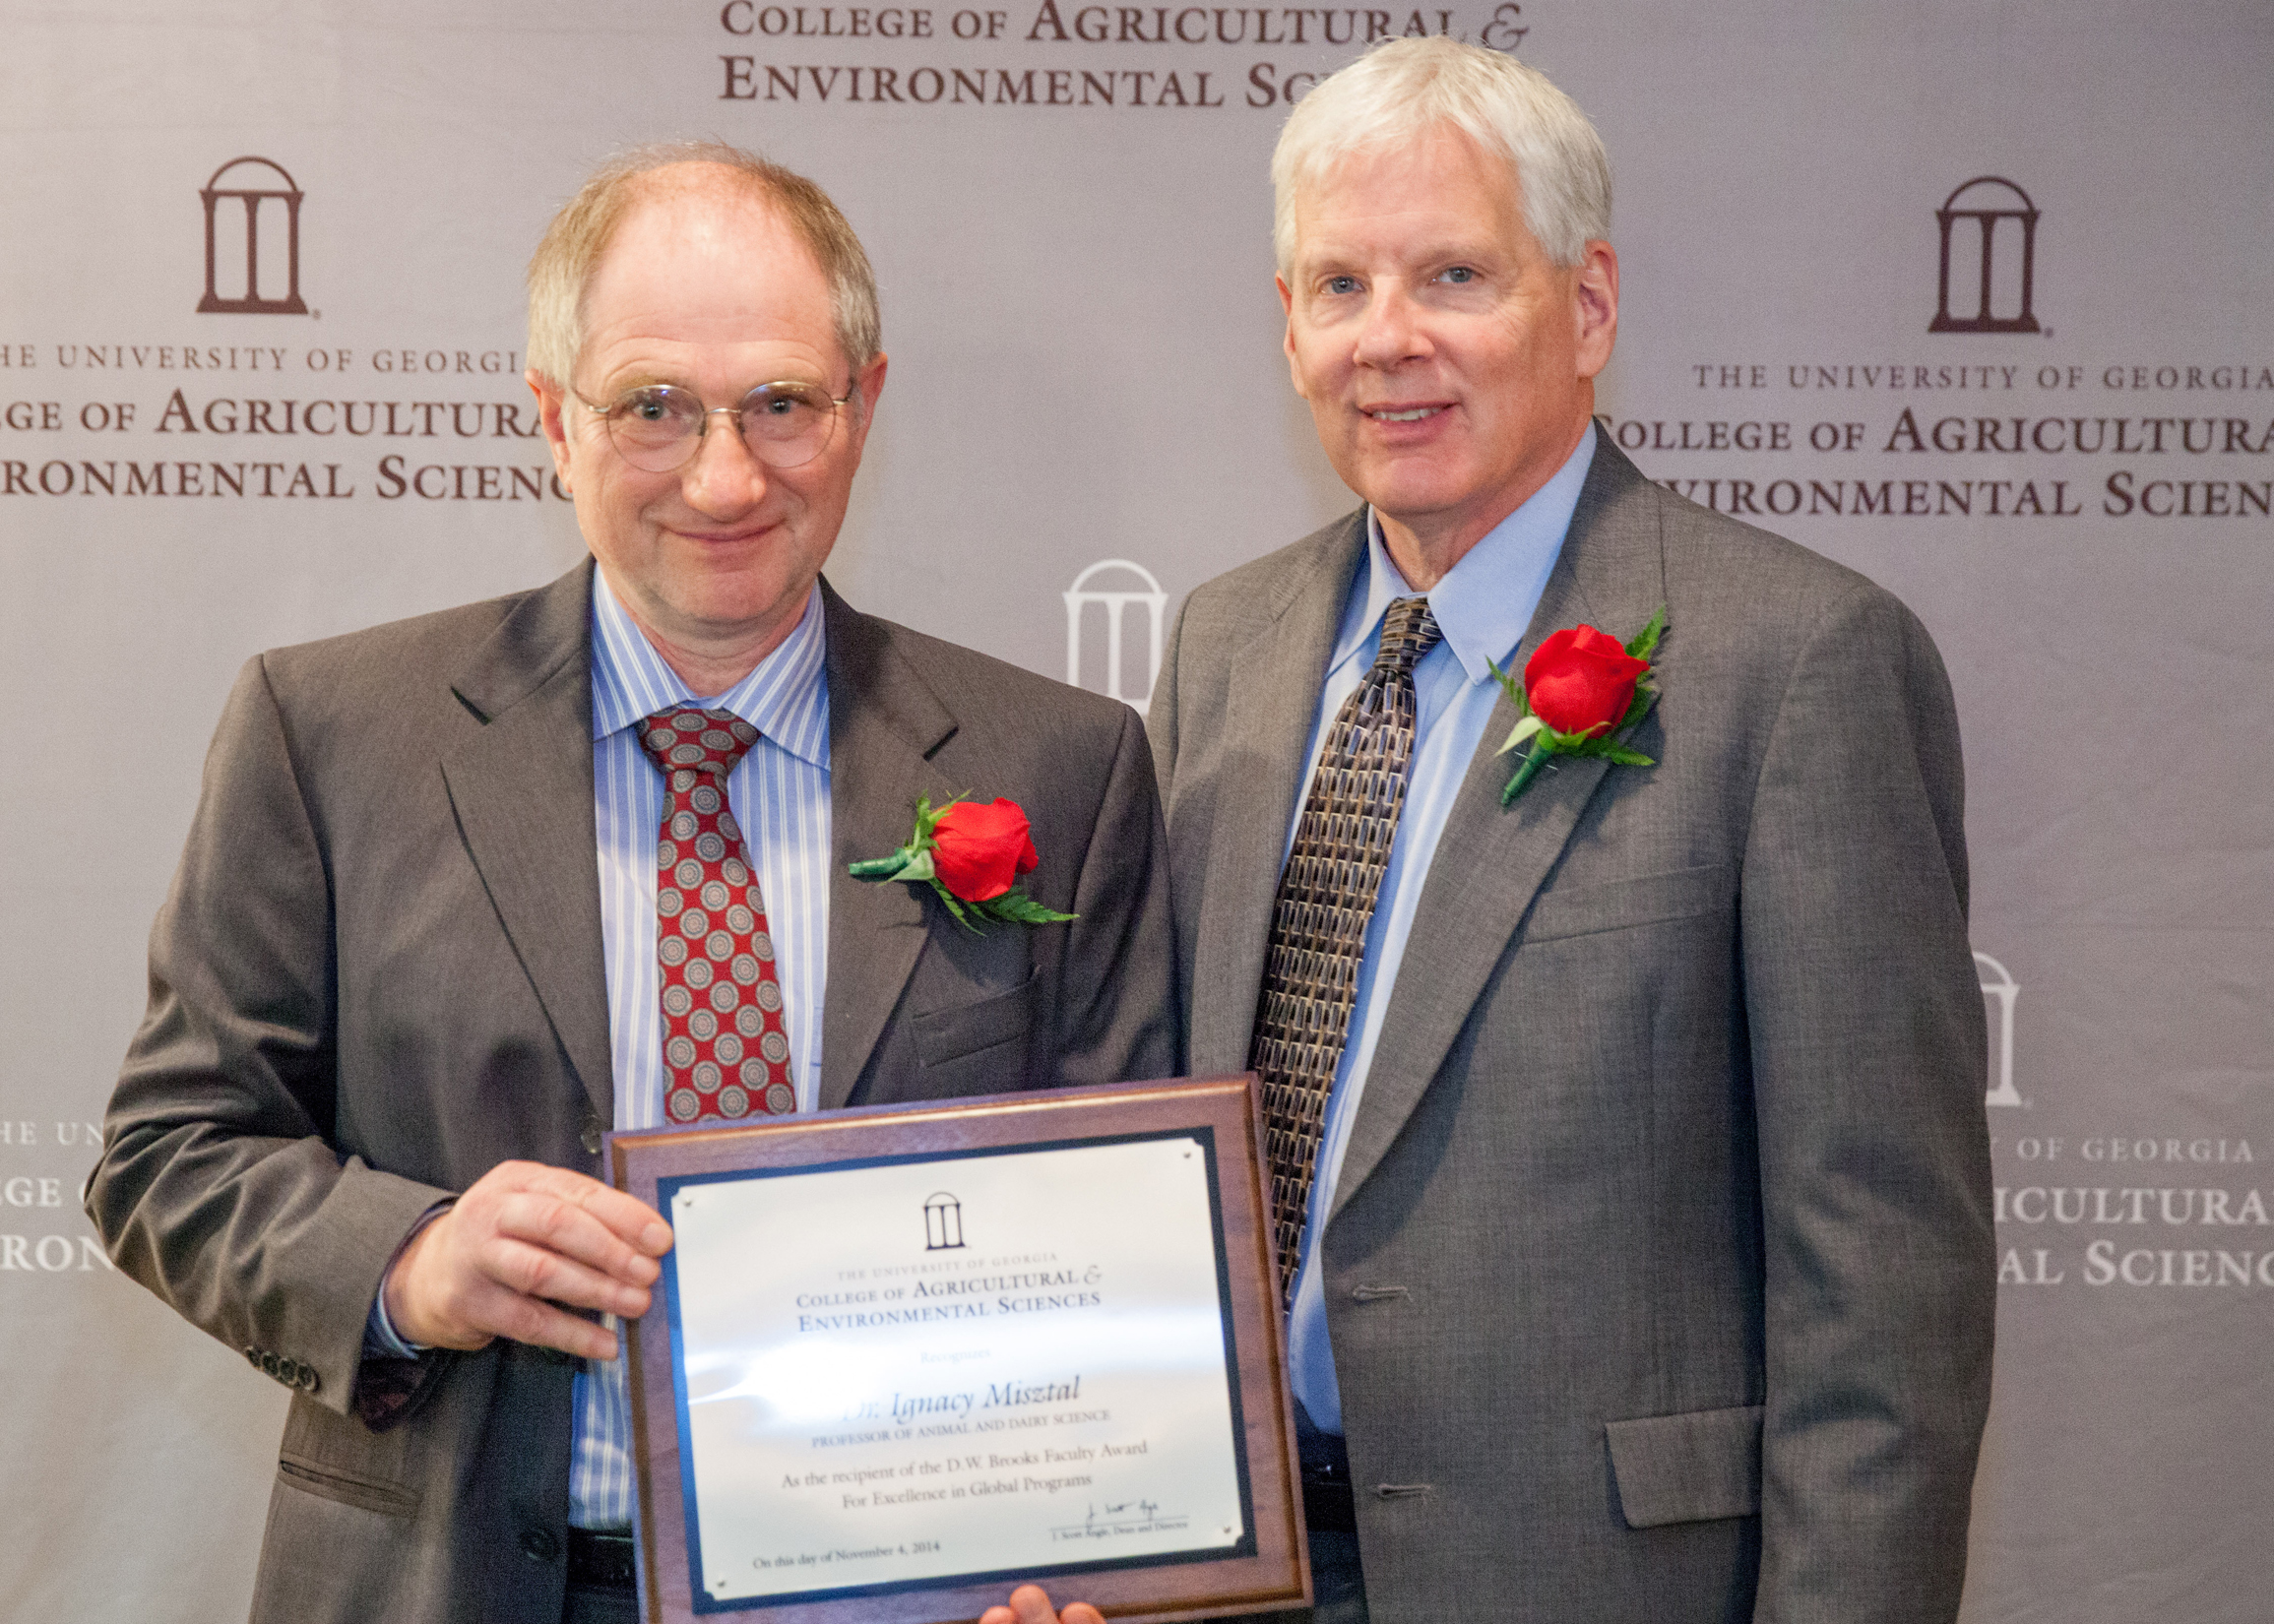 Dean J. Scott Angle presents Professor Ignacy Misztal, of the Department of Animal and Dairy Science, with the D.W. Brooks Faculty Award for Excellence in Global Programs. The award recognizes his worldwide reputation as an expert on genetic analysis and animal breeding, and the number of international scholars who have come to UGA to study with him.